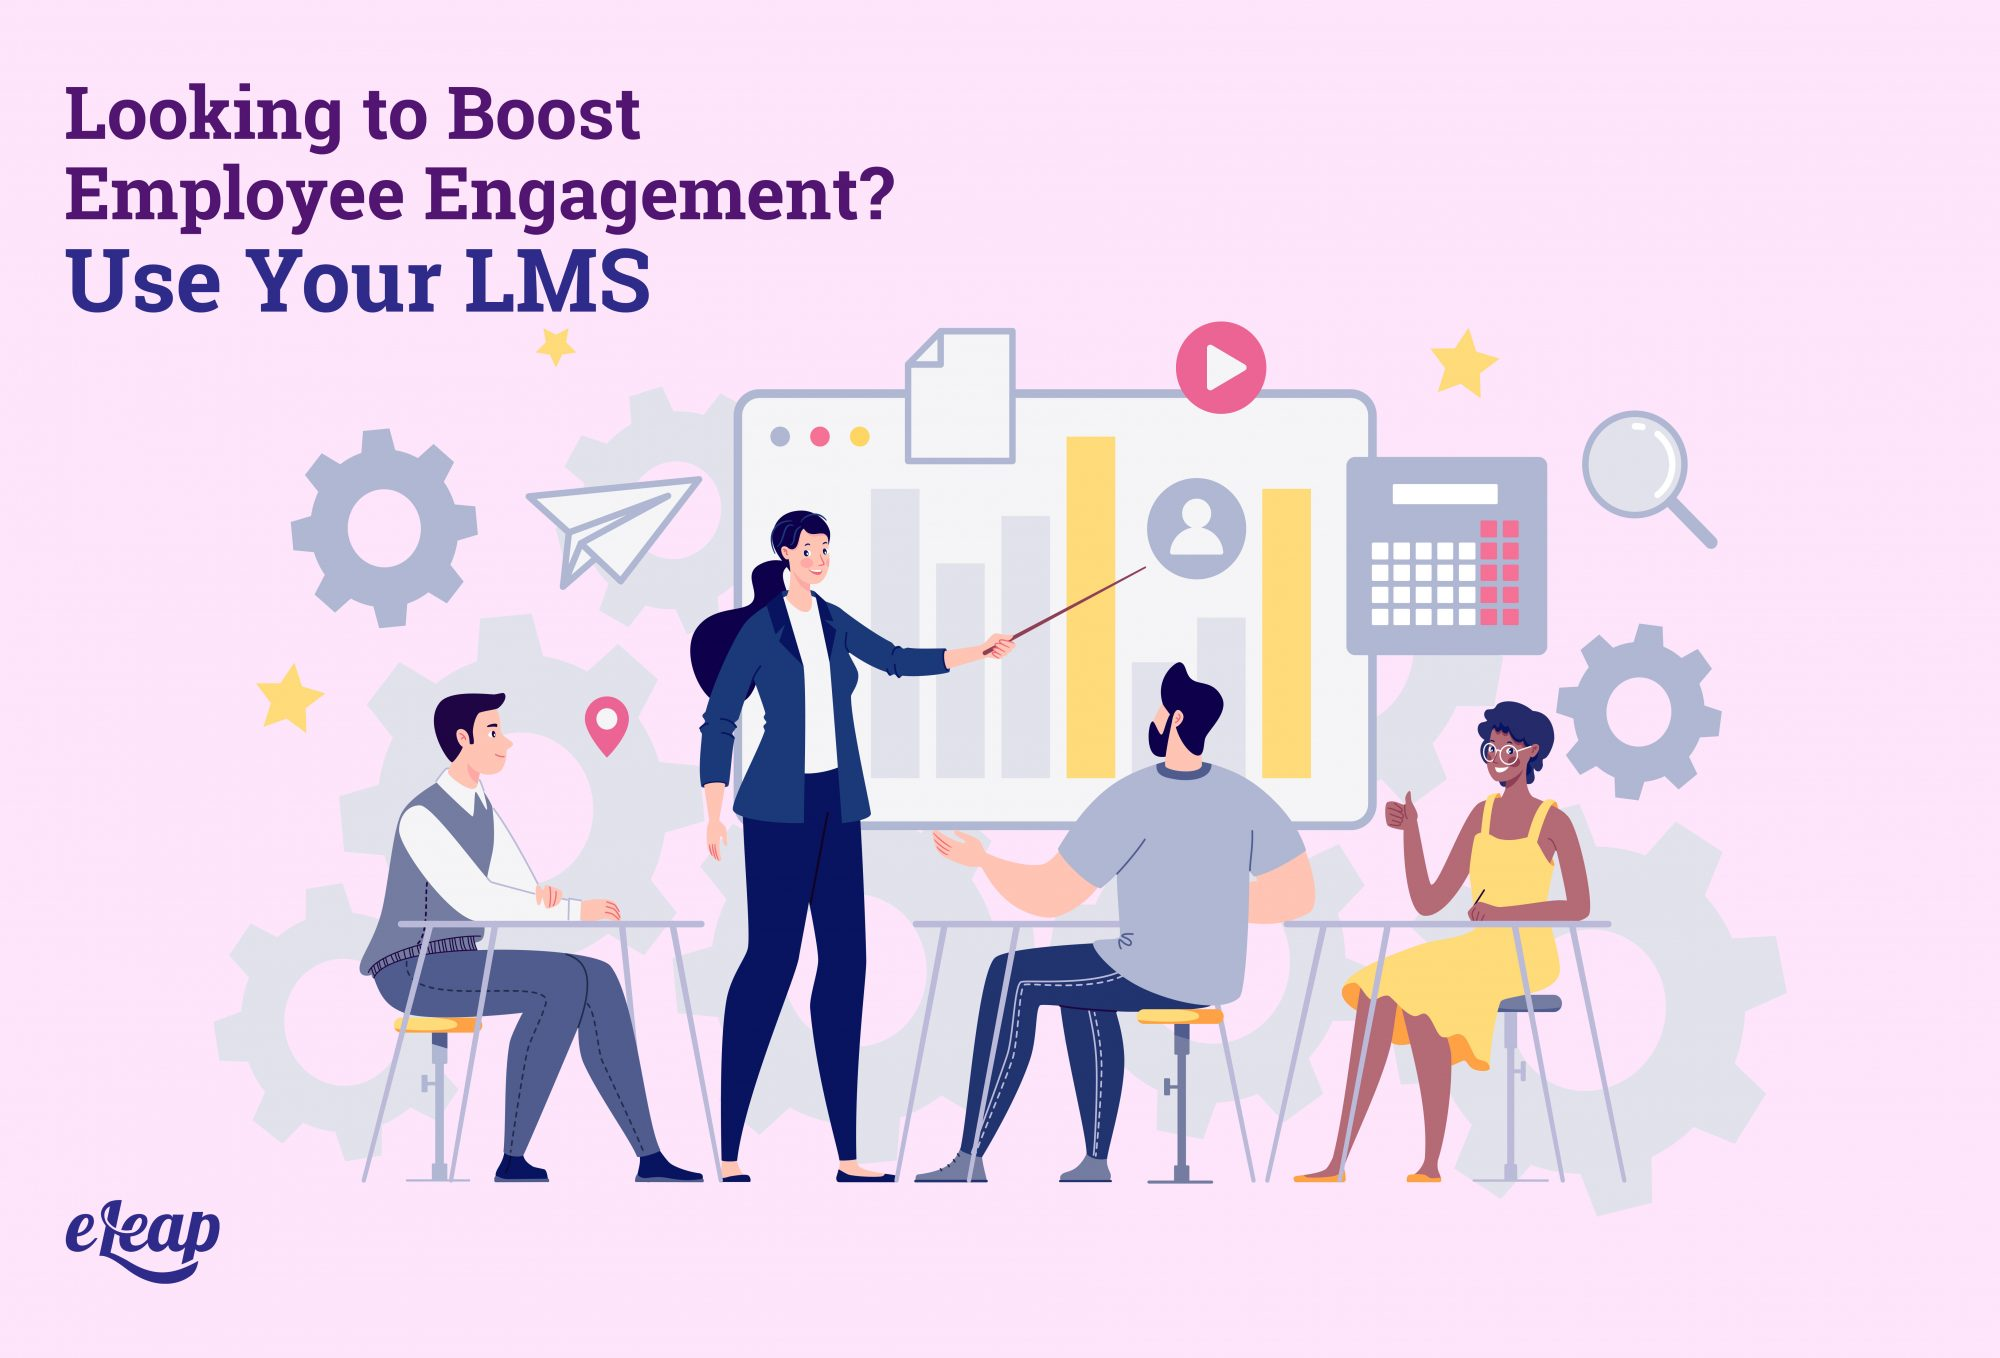 Looking to Boost Employee Engagement? Use Your LMS